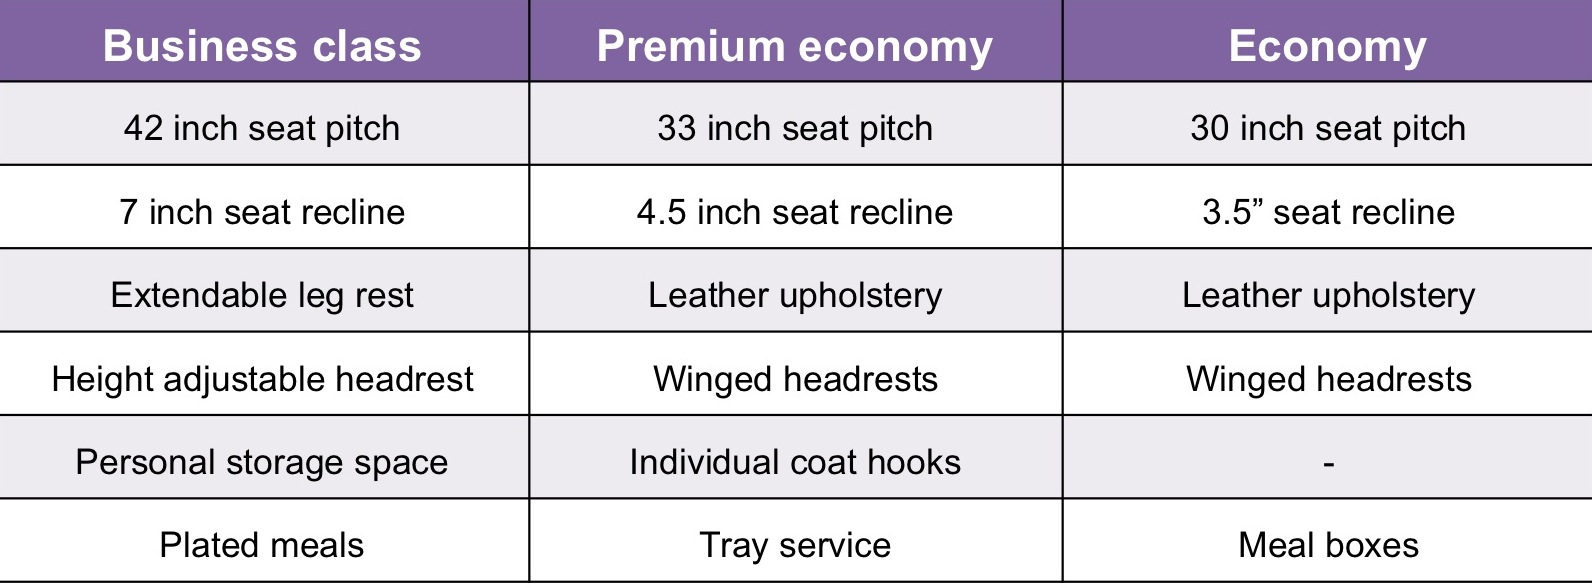 http://i0.wp.com/www.bangaloreaviation.com/wp-content/uploads/2015/01/Vistara_Cabin_Comparisons.jpg